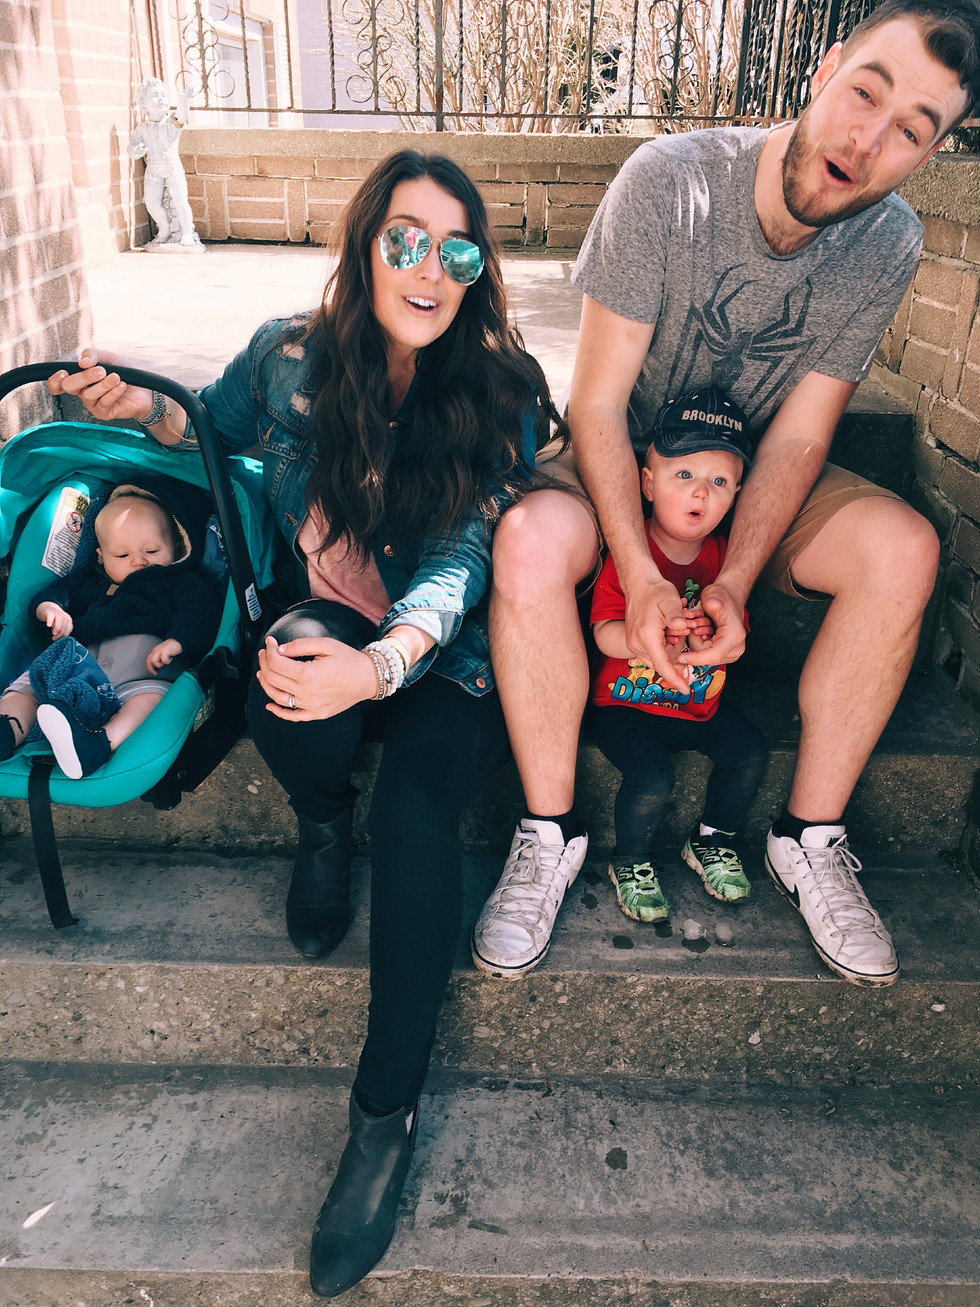 Unraveling into the role of motherhood